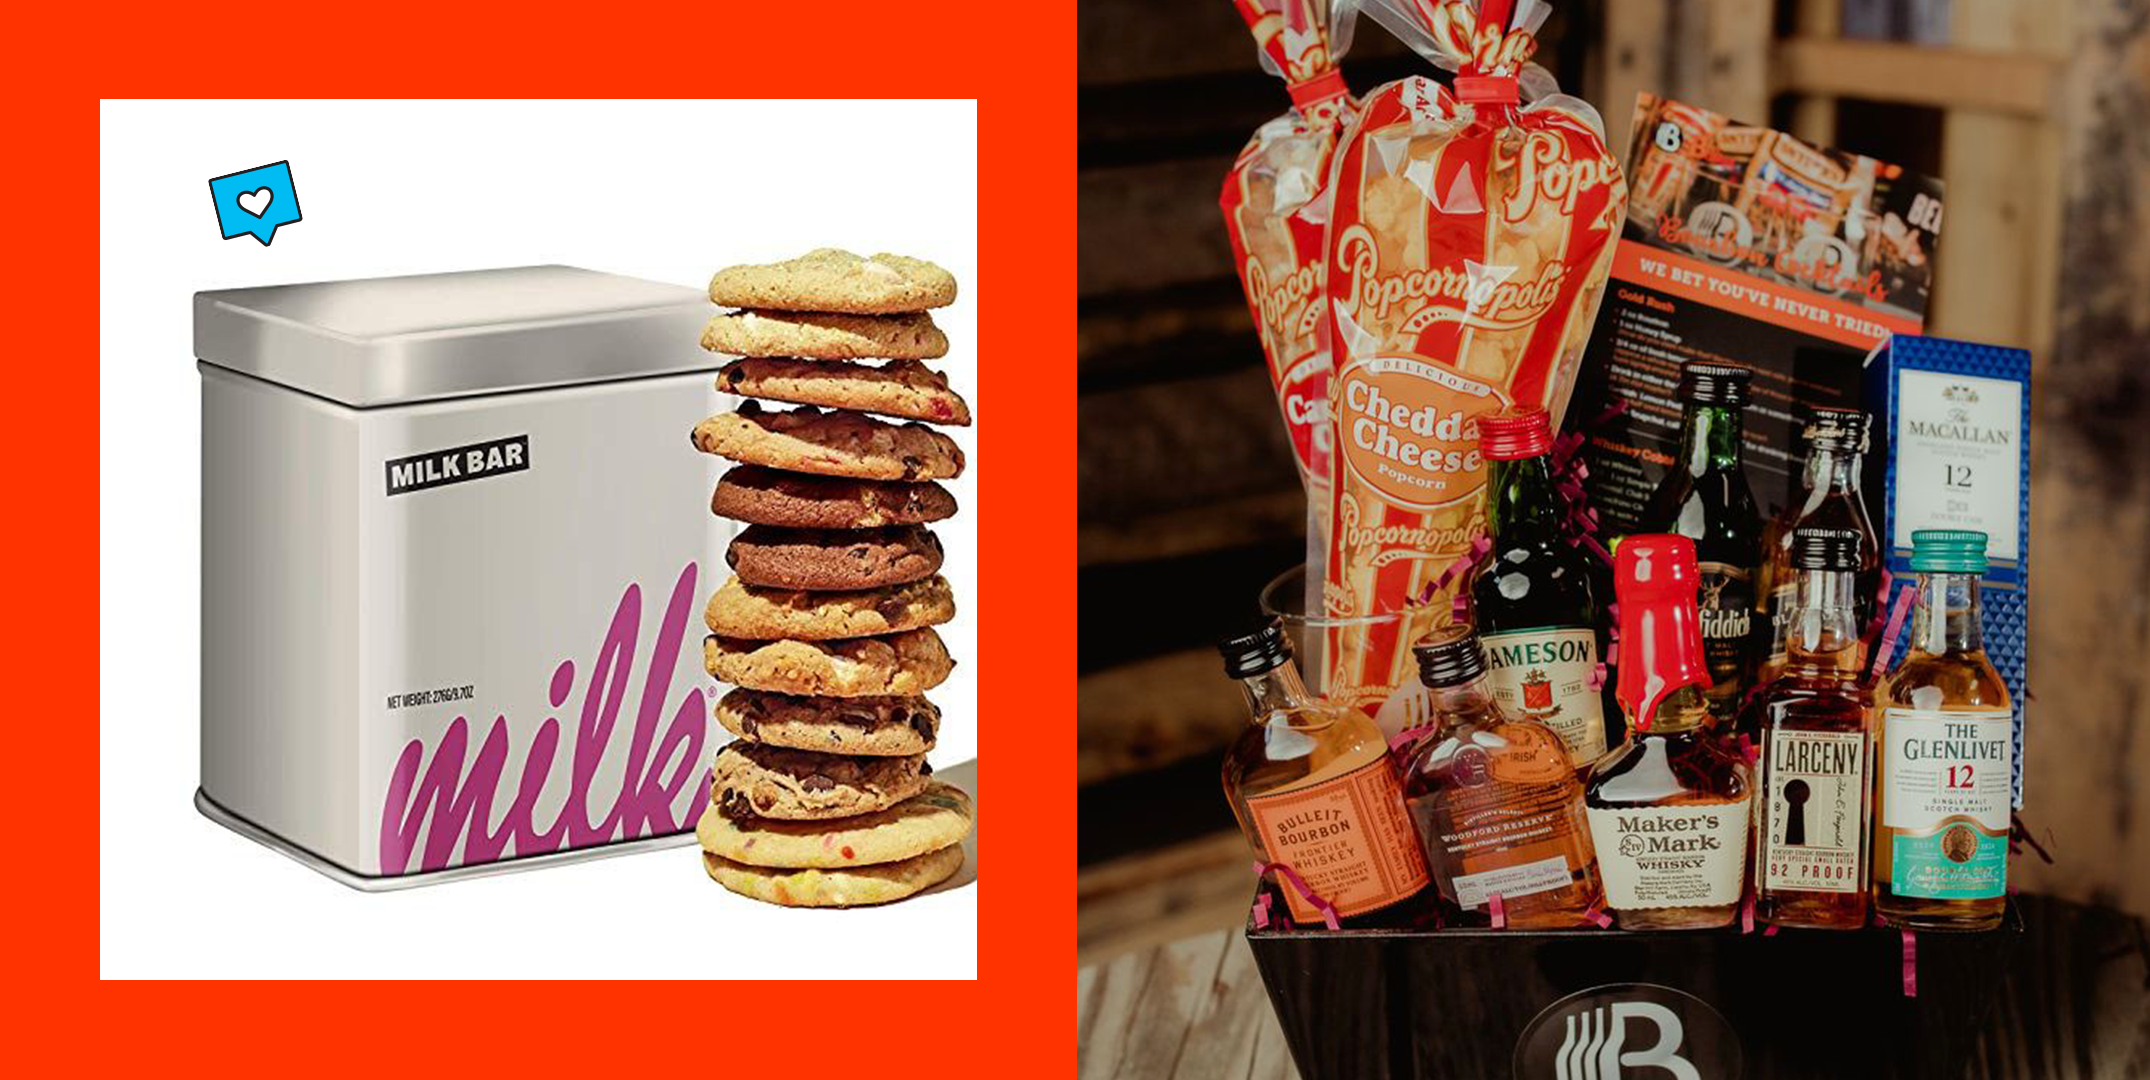 10 Thoughtful Gift Baskets for Men That'll Make Shopping for Him Real Easy